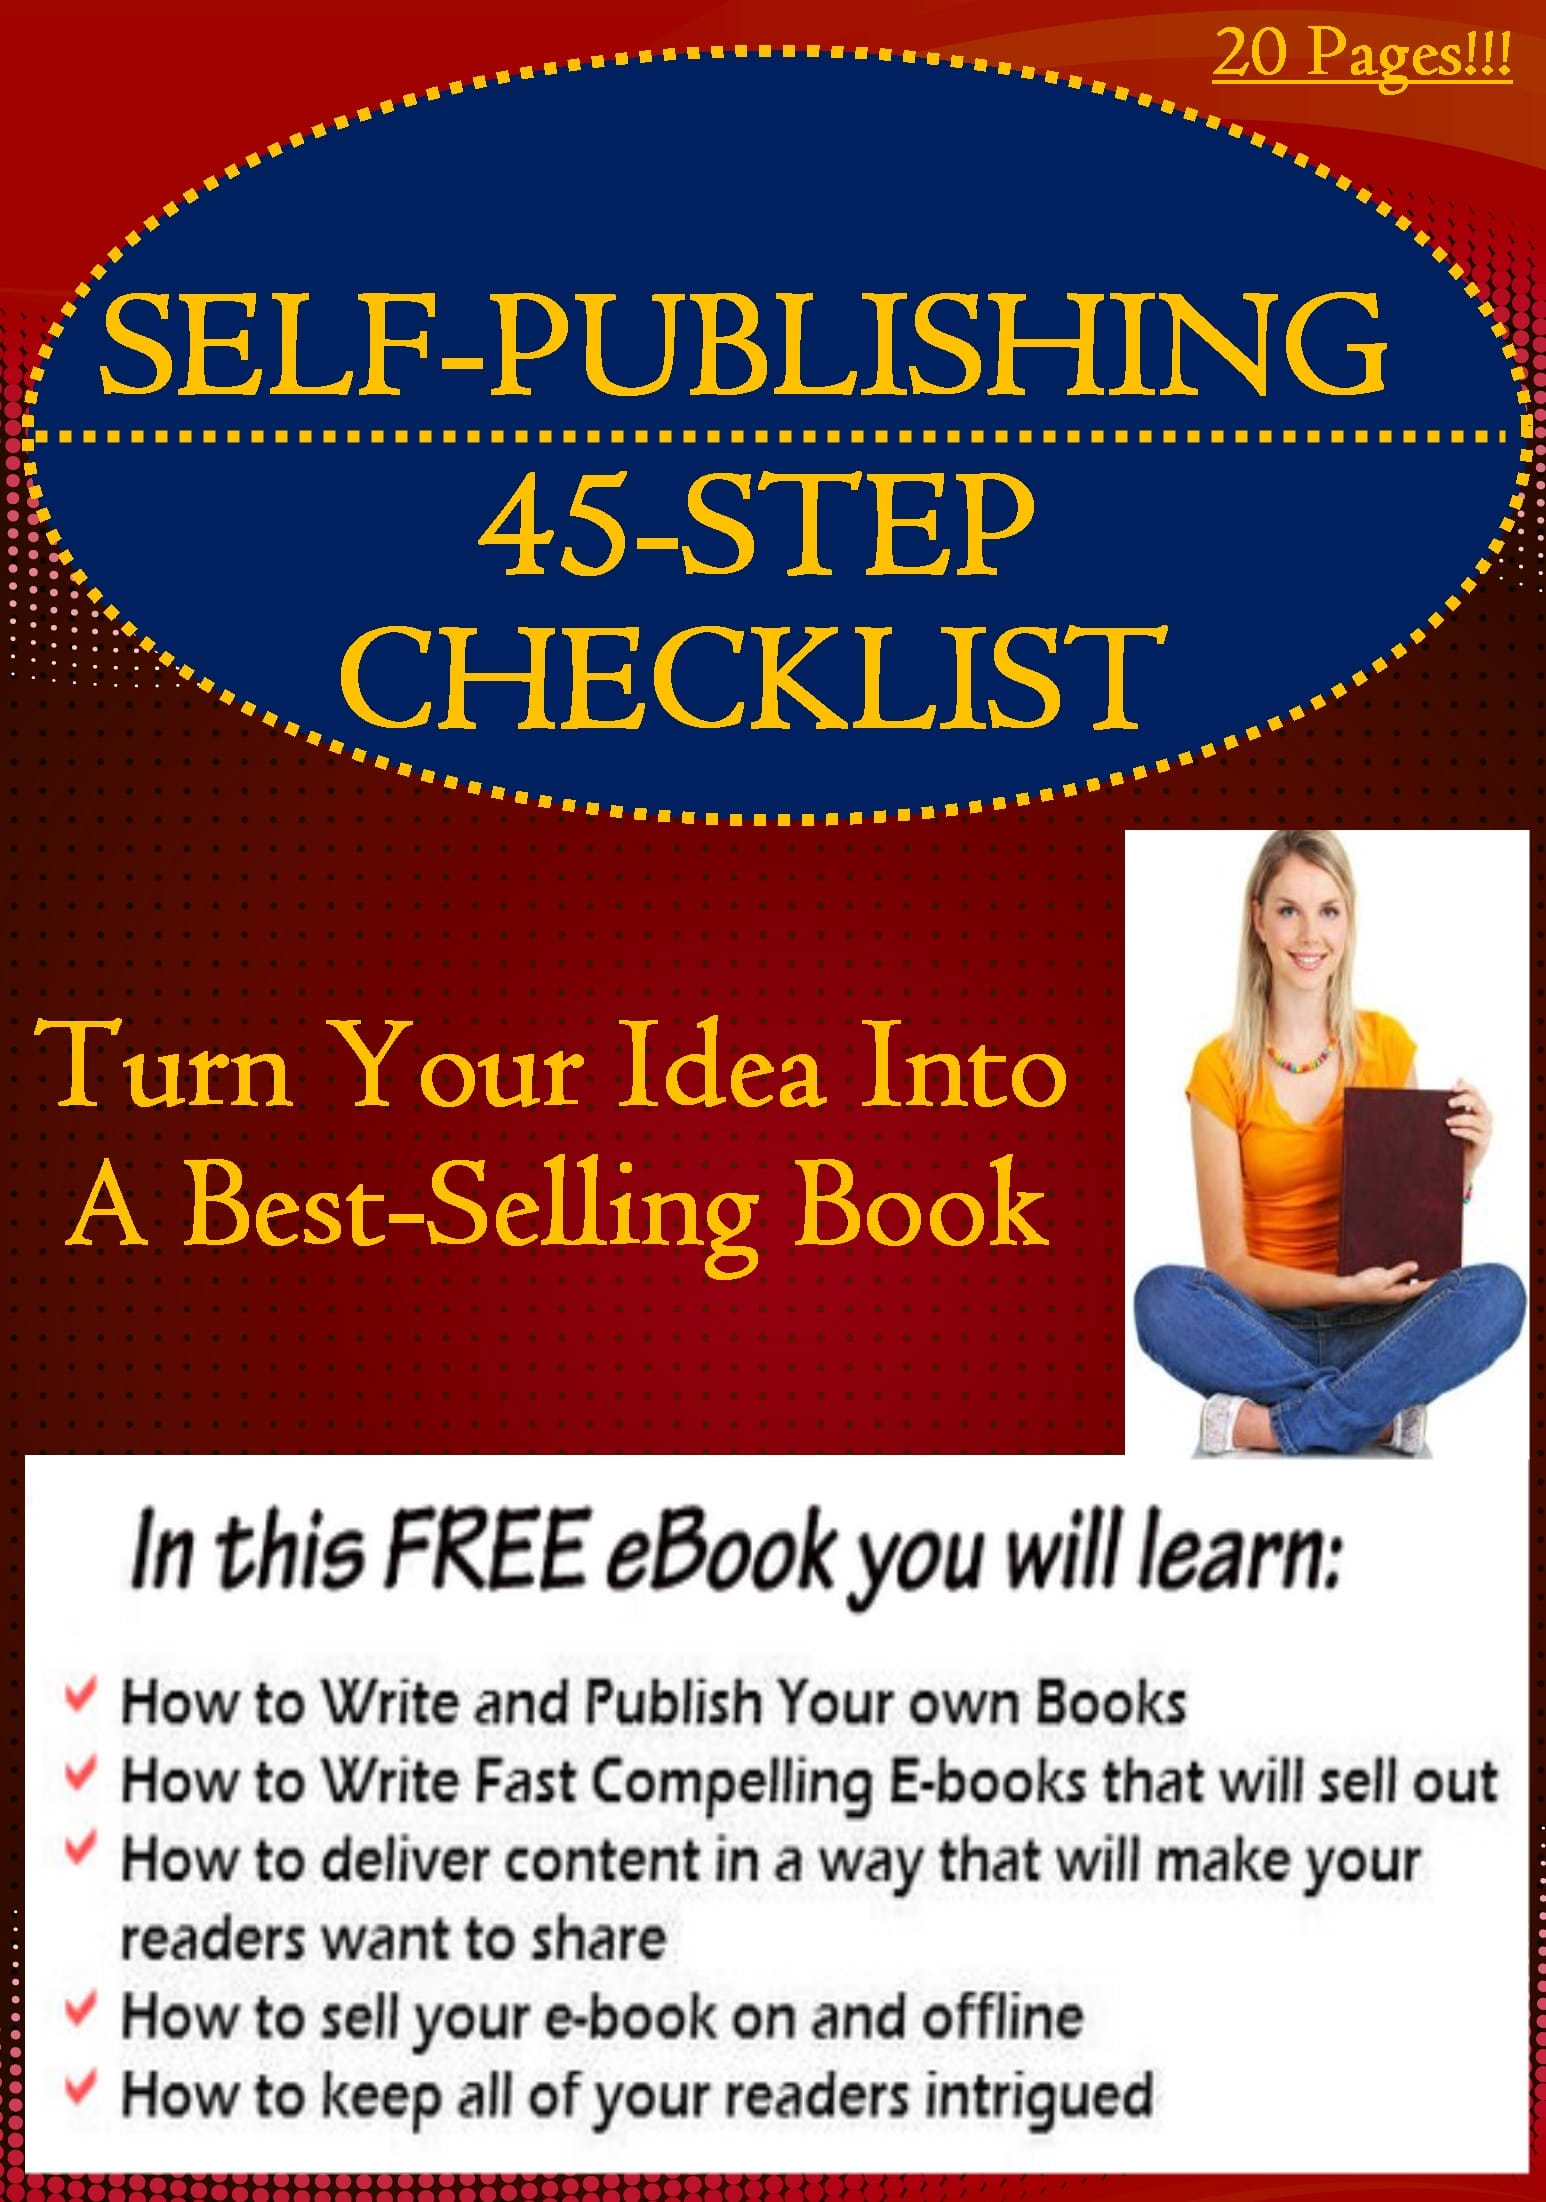 8 Steps to Creating and Selling Ebooks on Your Website